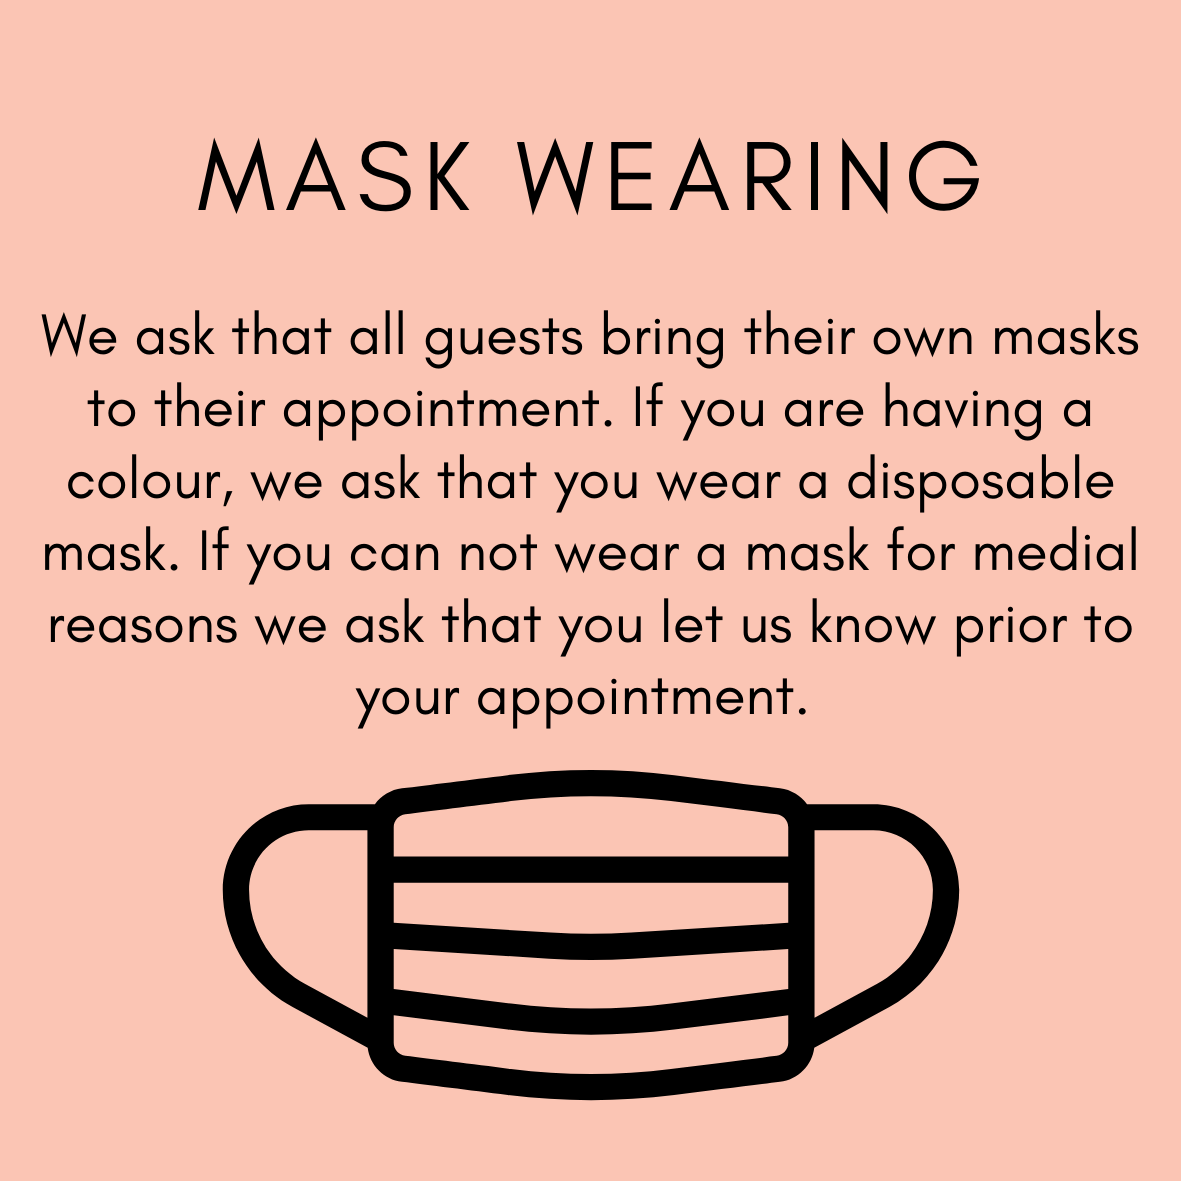 please bring your own mask to your appointment